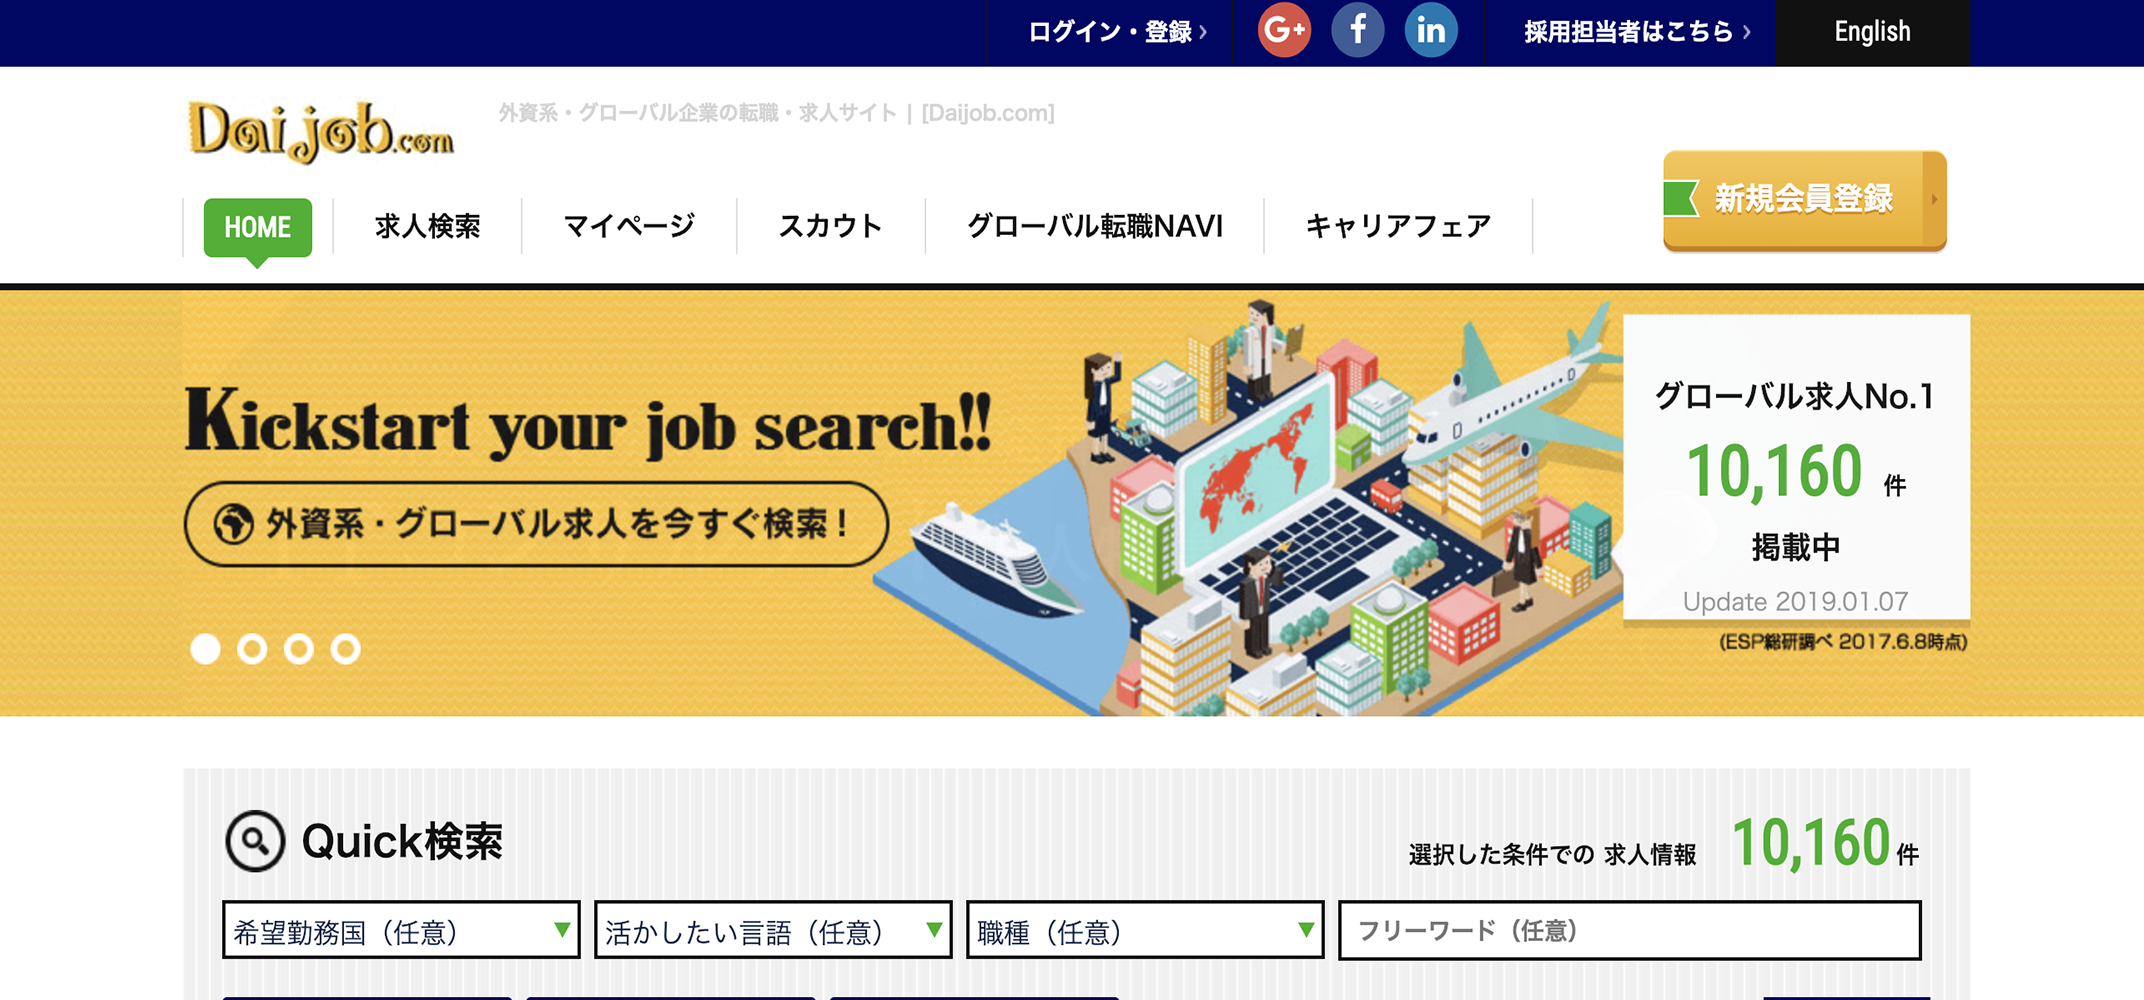 "Jobsite for those hoping to work for a global company using their language ability. ""Daijob.com"""